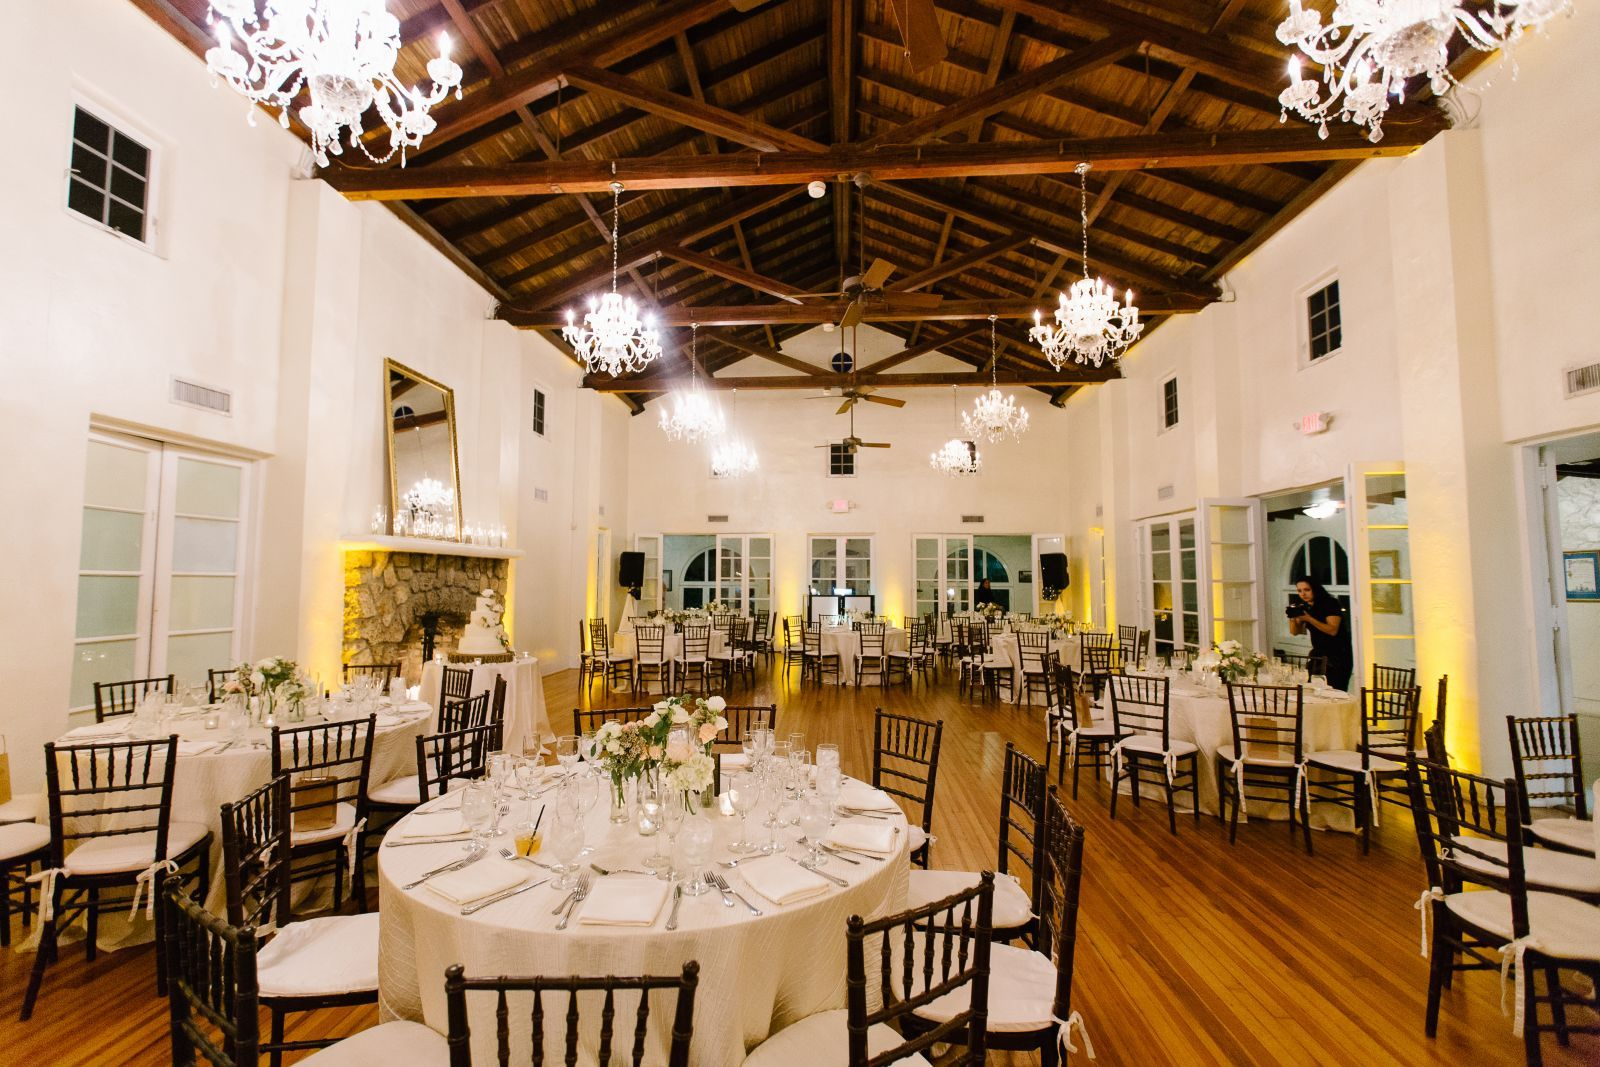 Coconut Grove Events At The Womans Club Of Coconut Grove Has